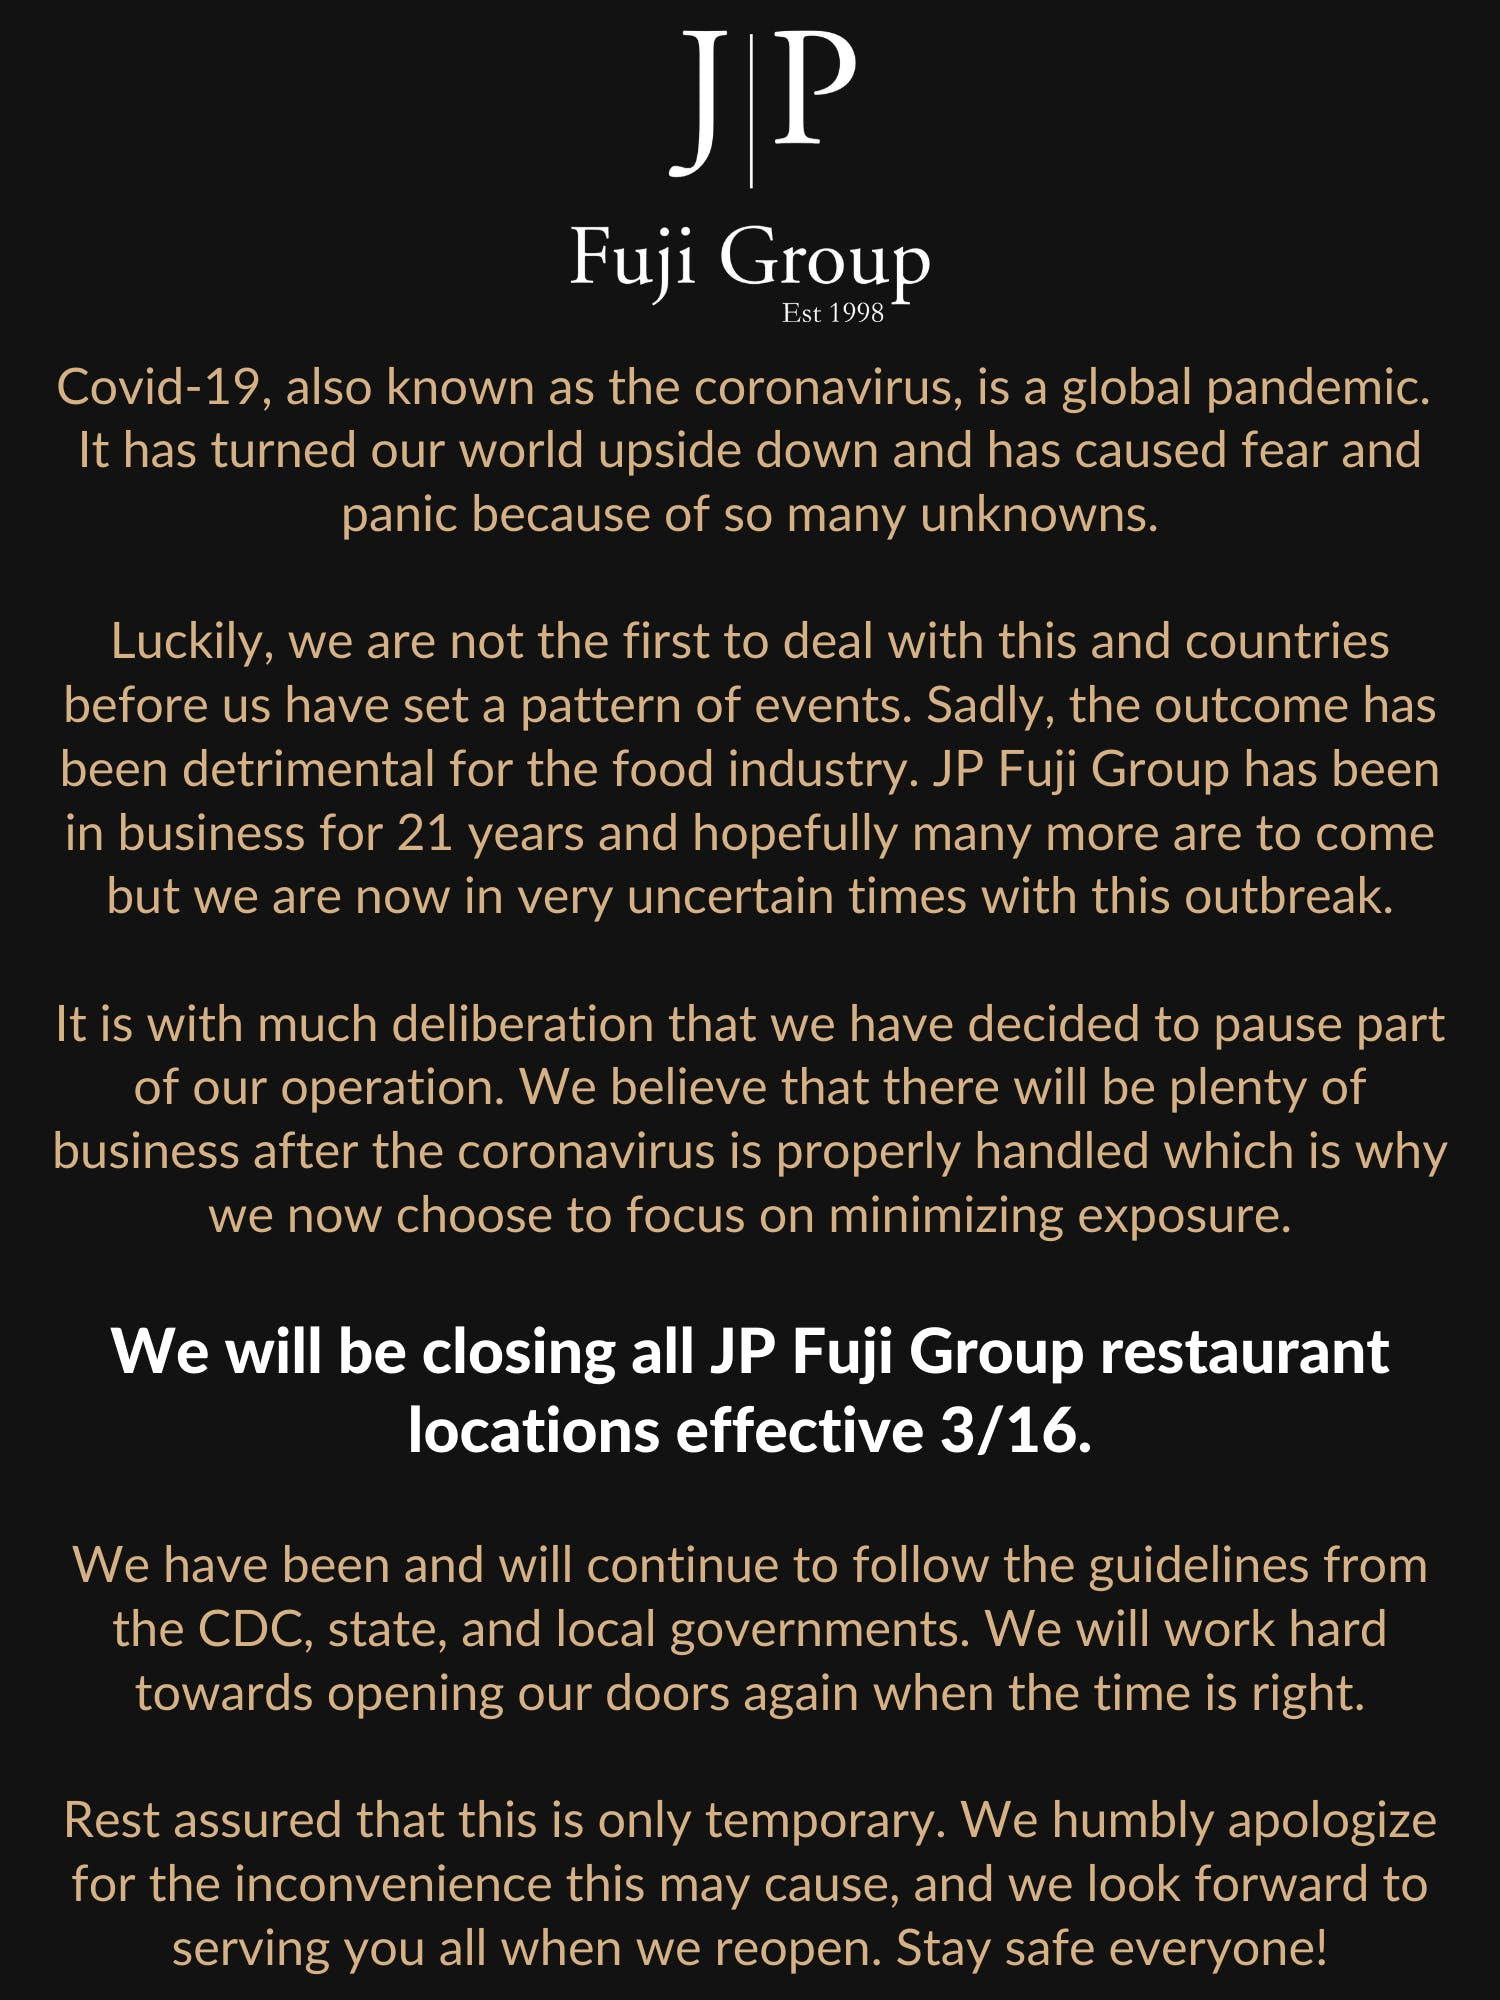 All JP Fuji Group locations will be closed due to the Coronavirus pandemic. We apologize for any inconvenience this may cause. Stay safe everyone!